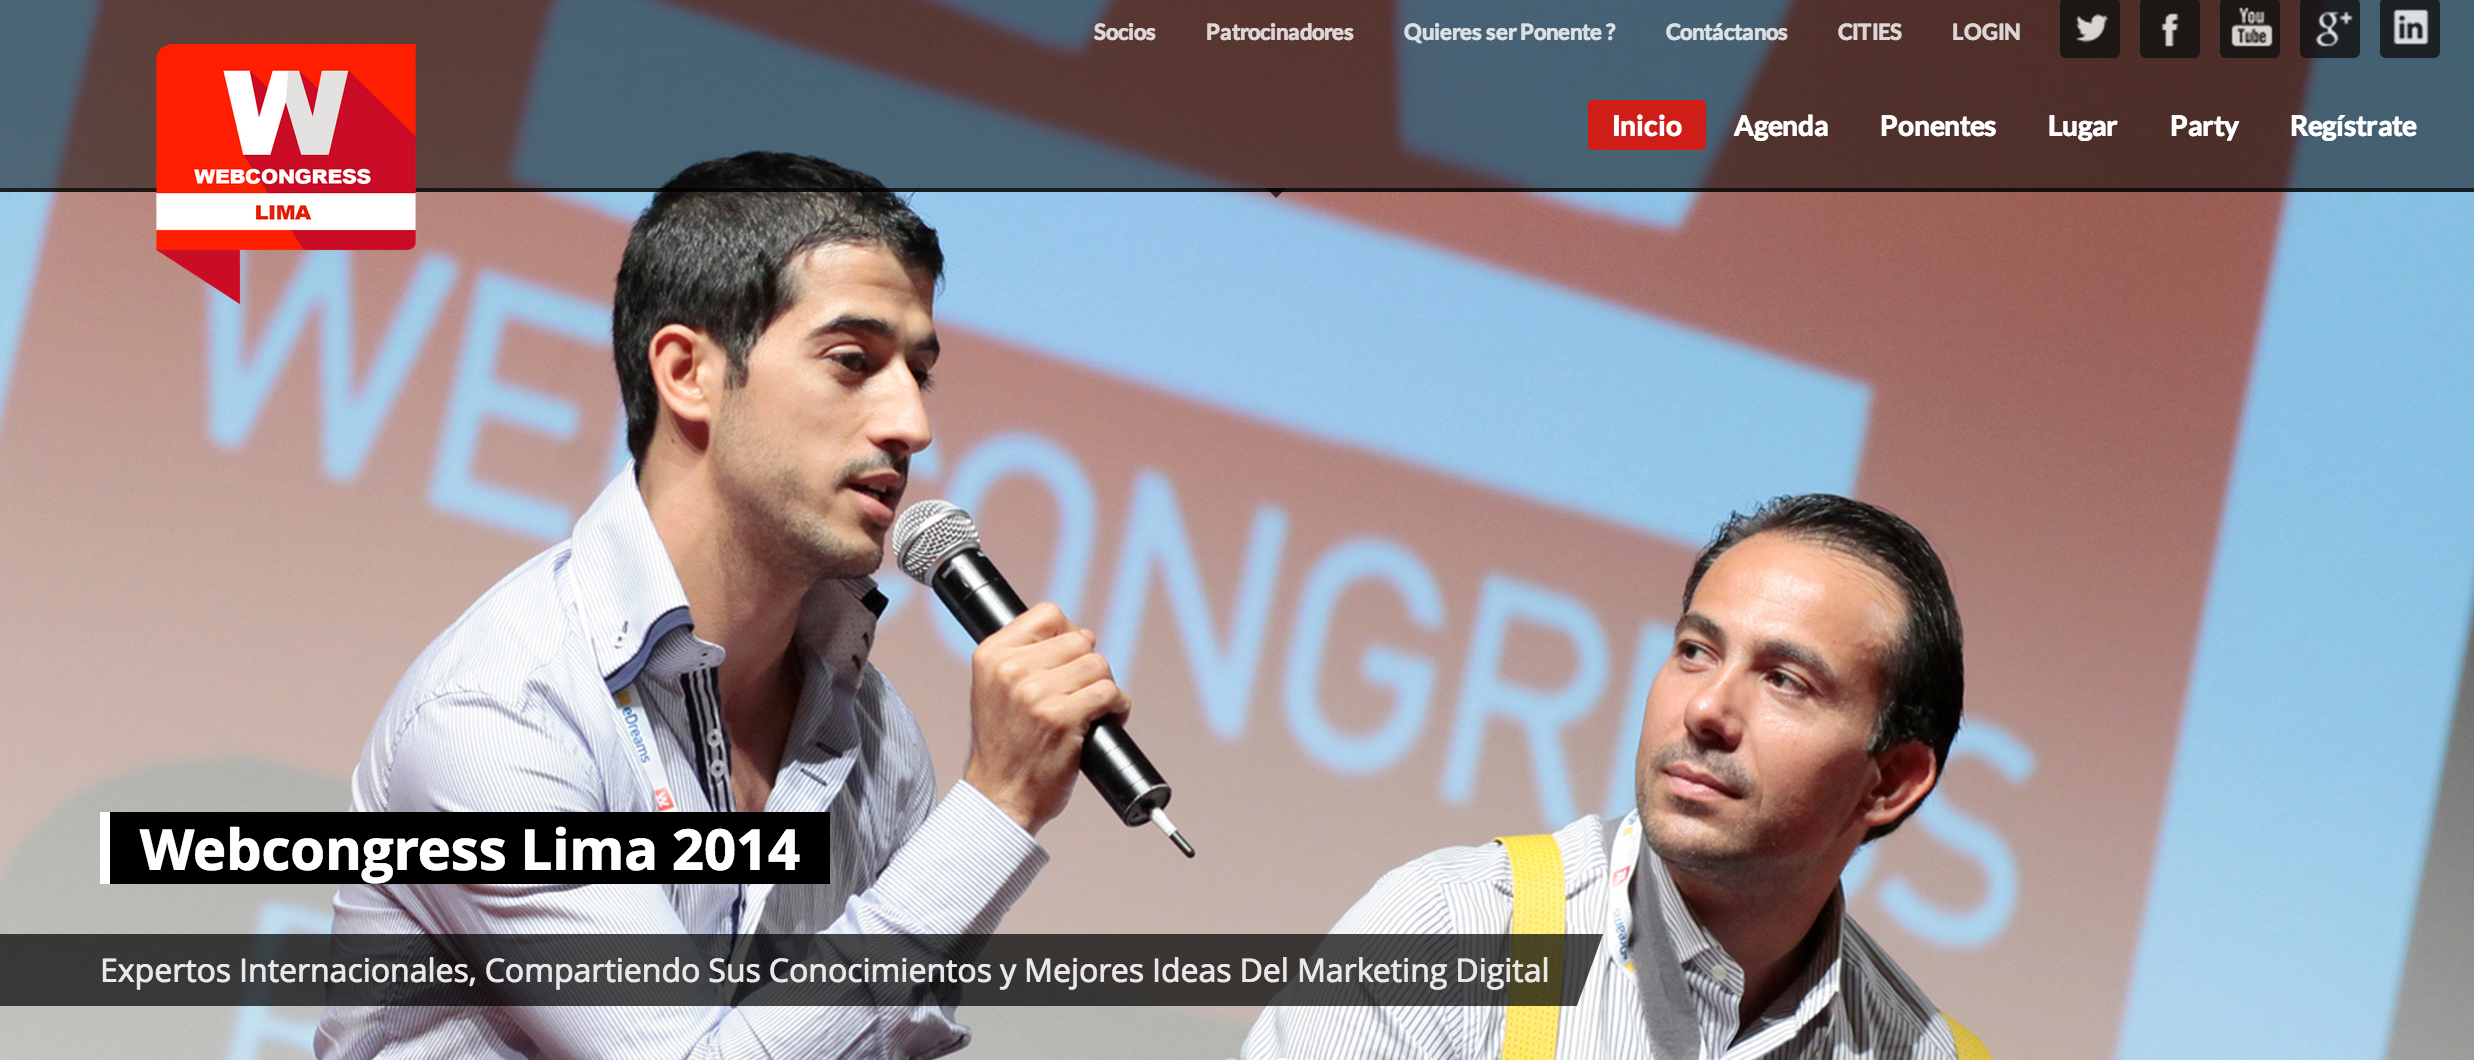 webcongress lima 2014